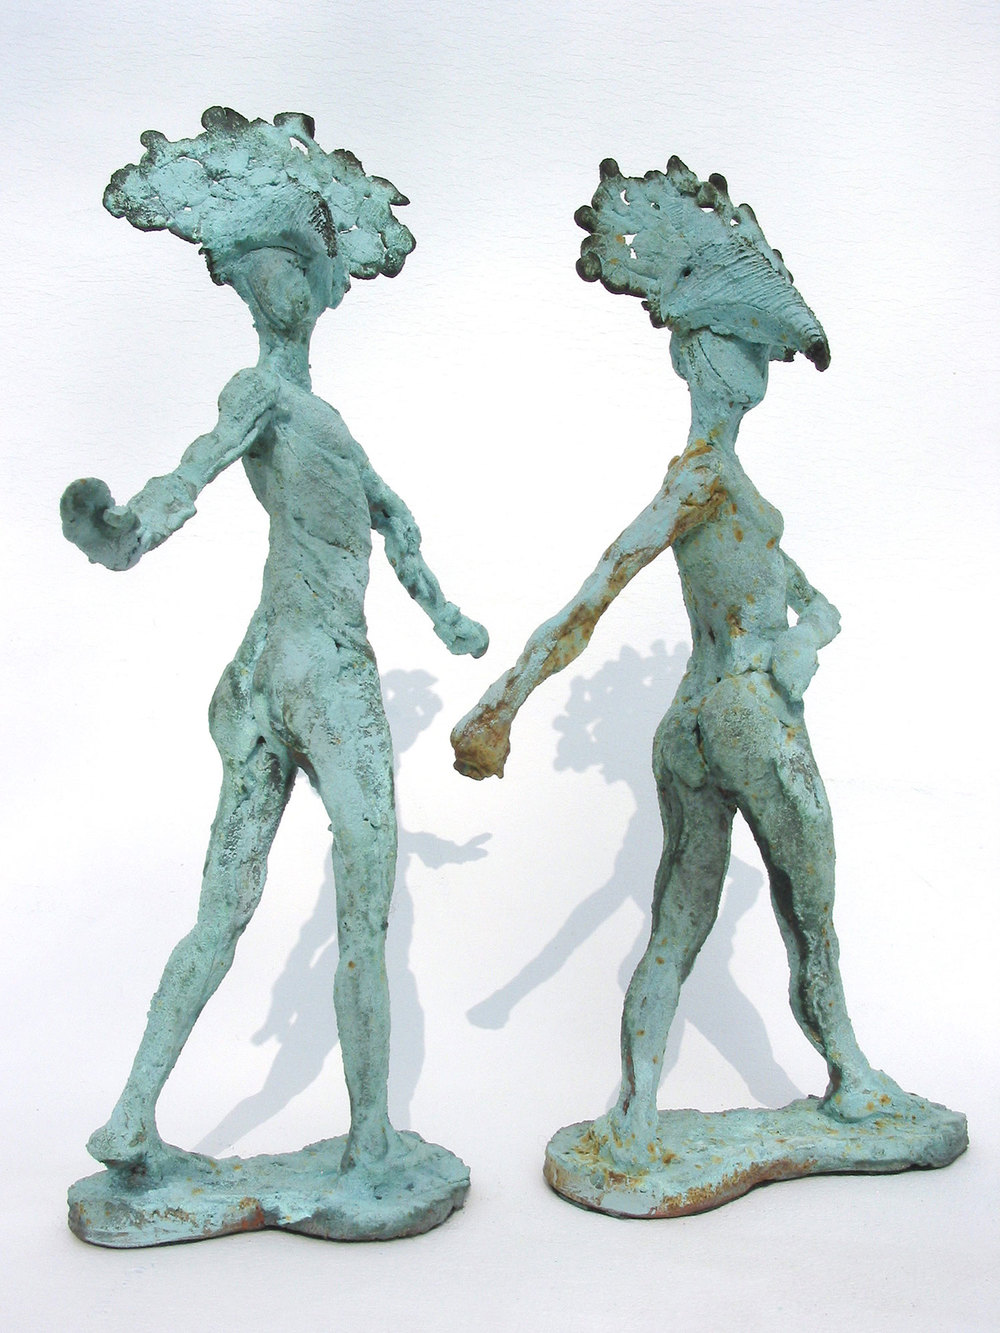 Seirenes   ©  36cm high x 36cm wide  Unique  The mythological Greek bird women. Several trips to Venice have also left their mark – a city where theatre and life are one and plague masks still abound.